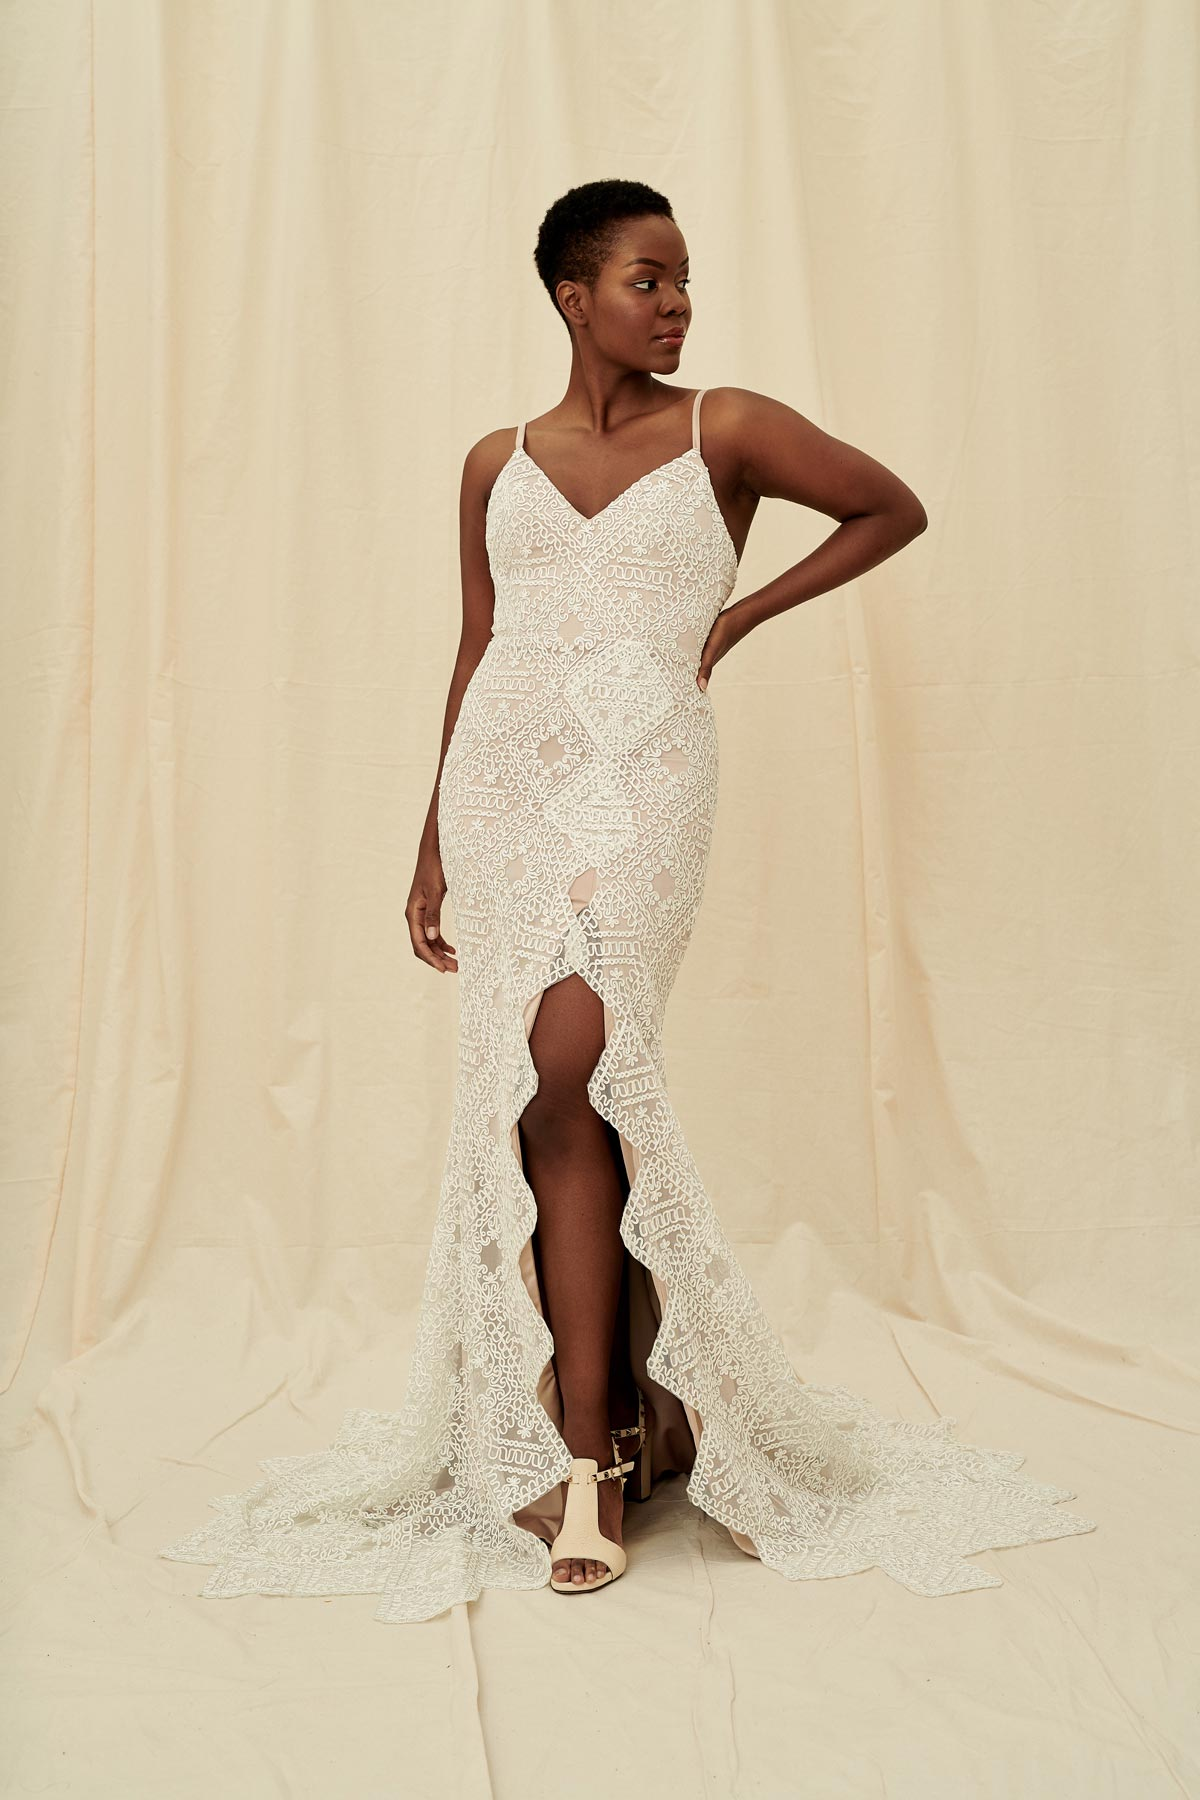 A unique wedding dress with a zigzag slit, geometric lace and a low back